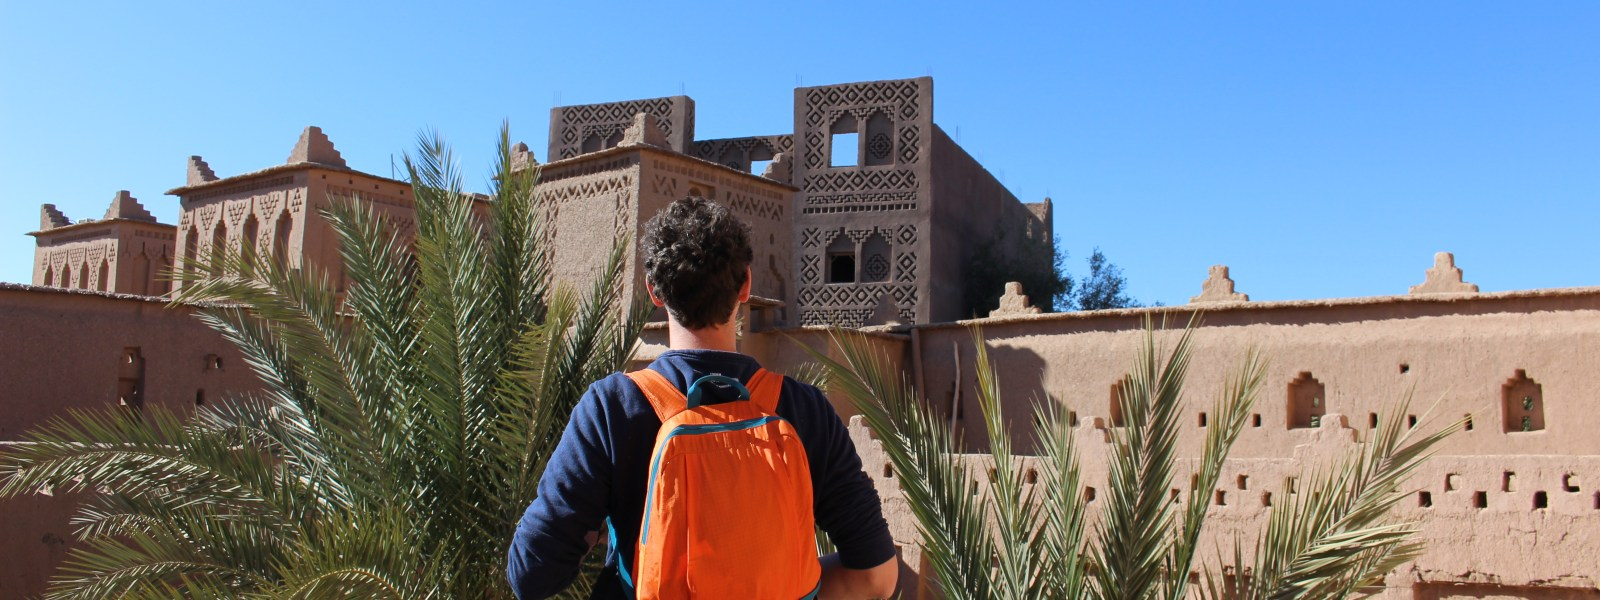 The best day trips from Marrakech